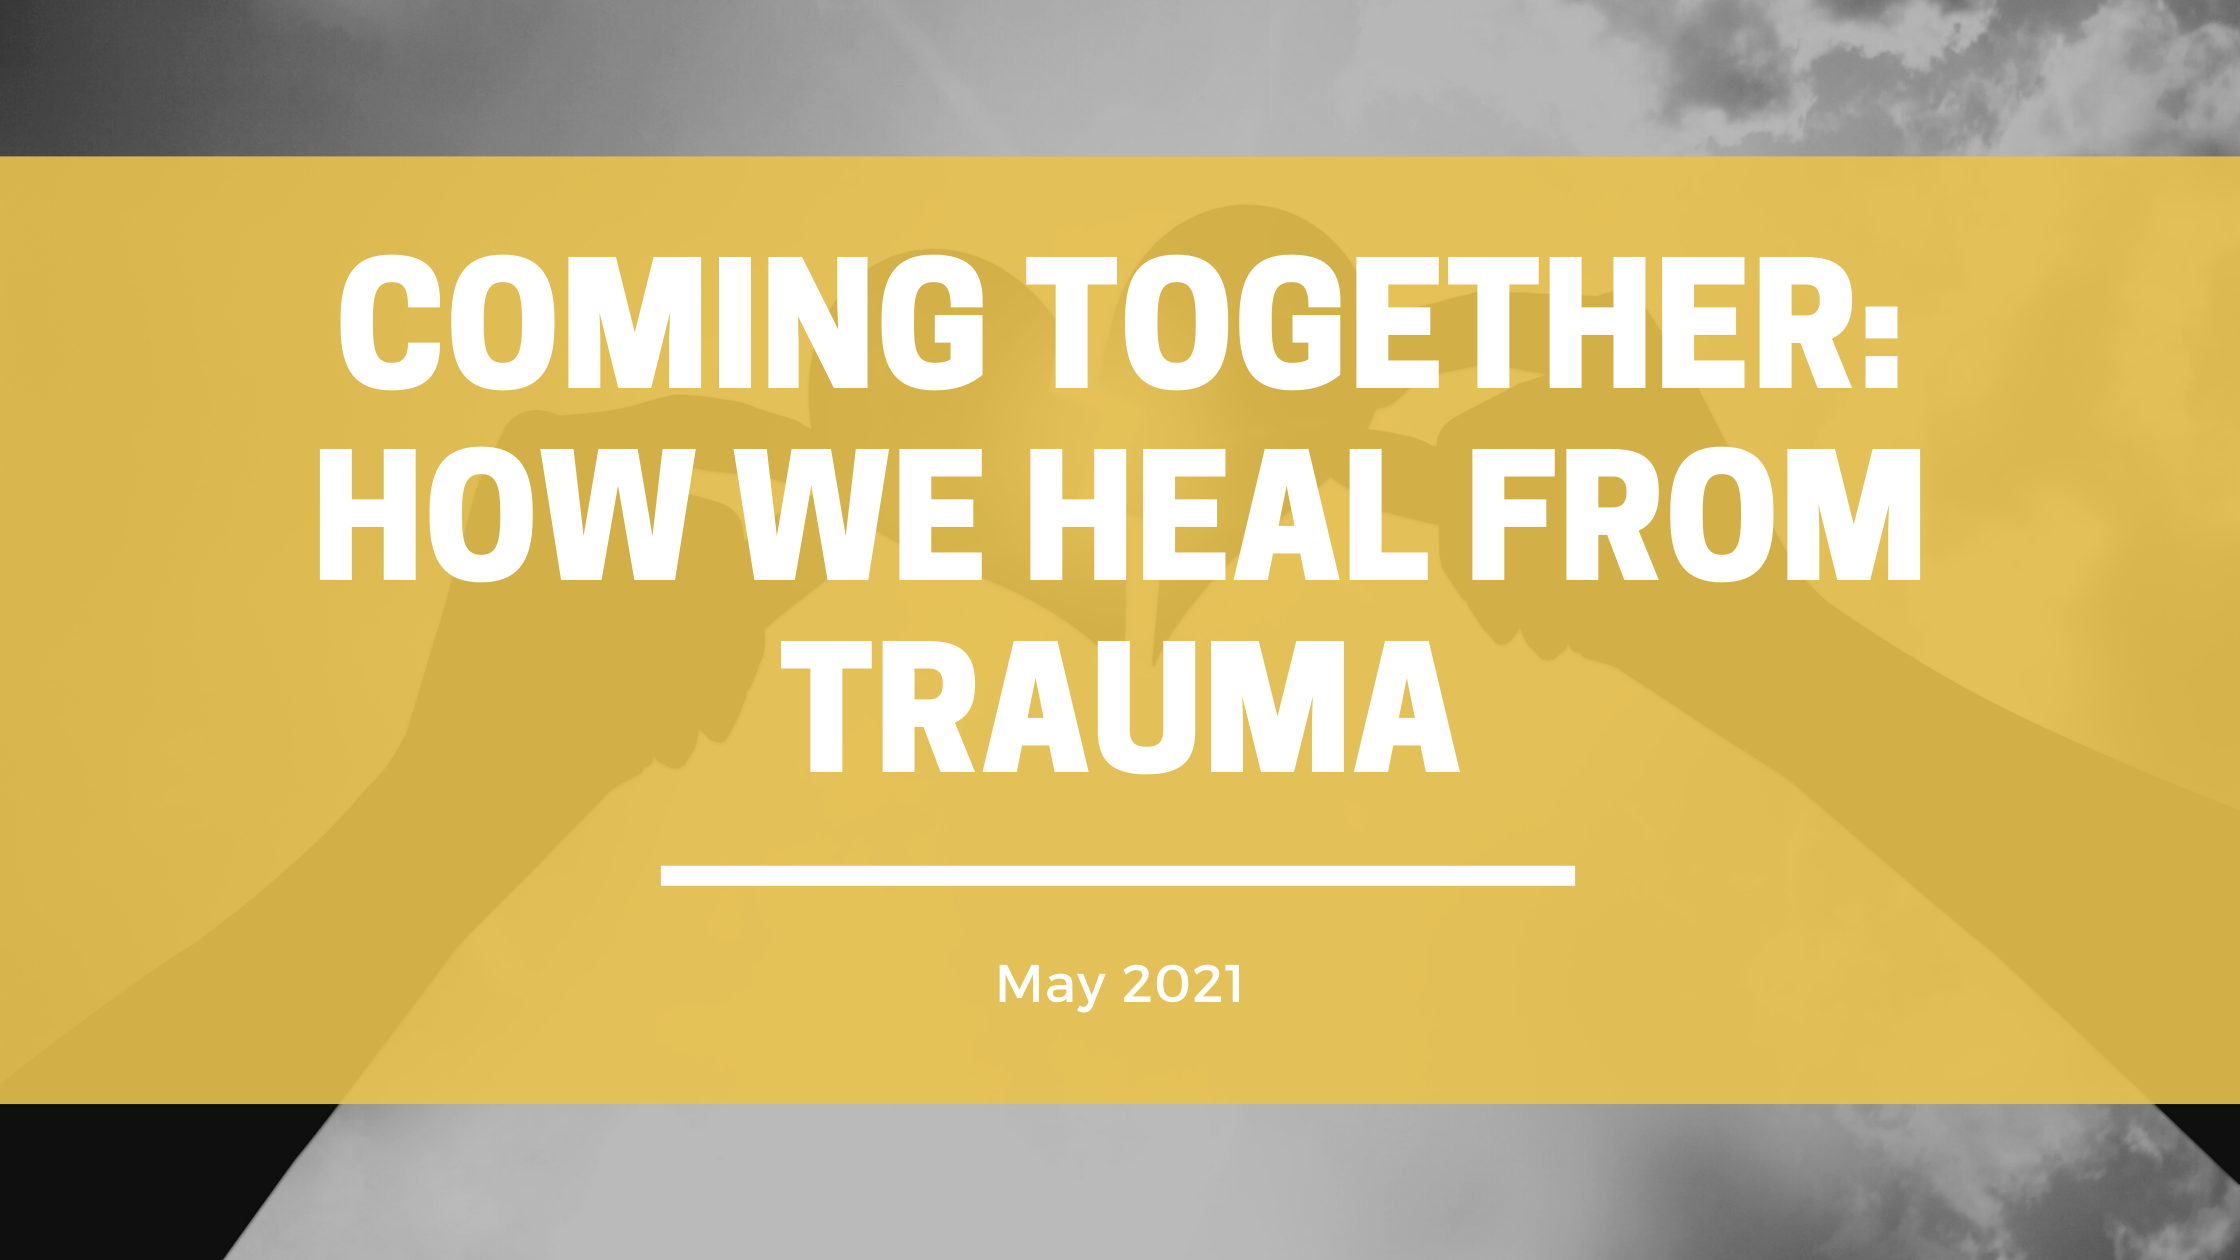 Coming together: How we heal from trauma